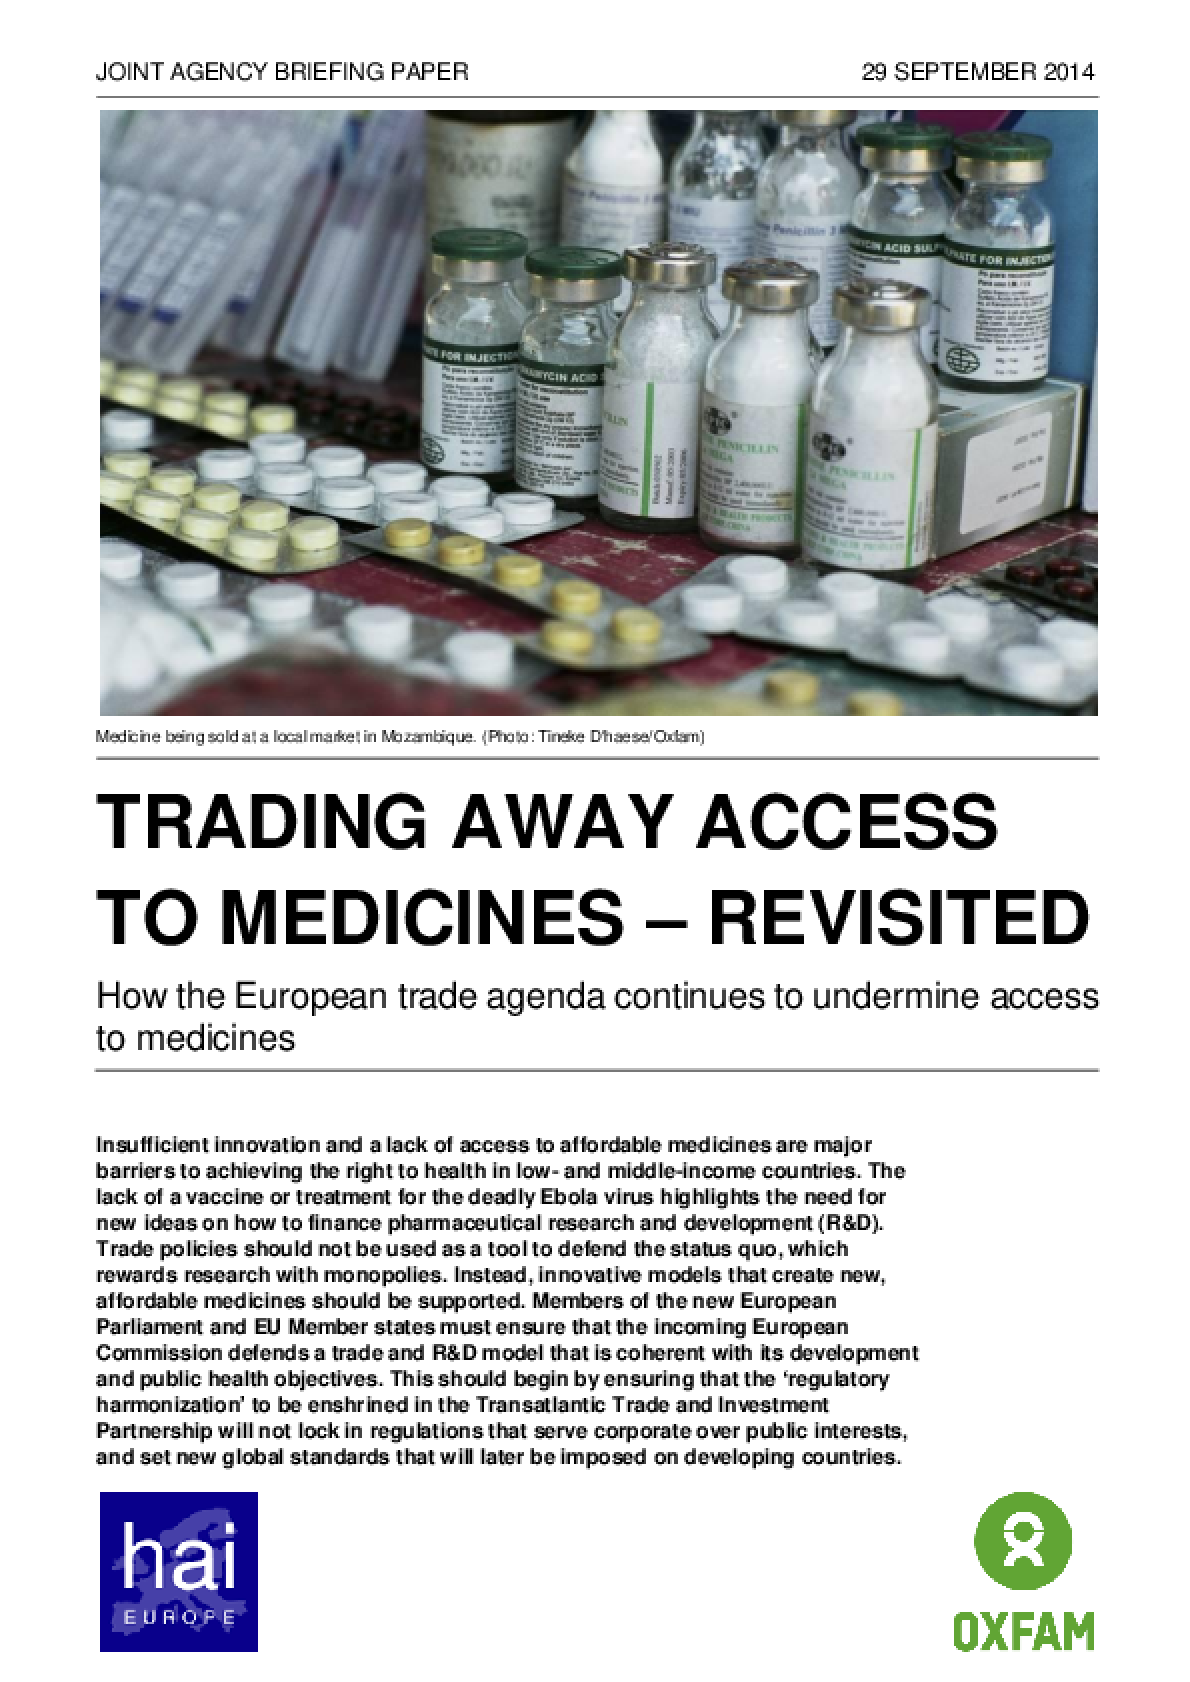 Trading Away Access to Medicines - Revisited: How the European trade agenda continues to undermine access to medicines